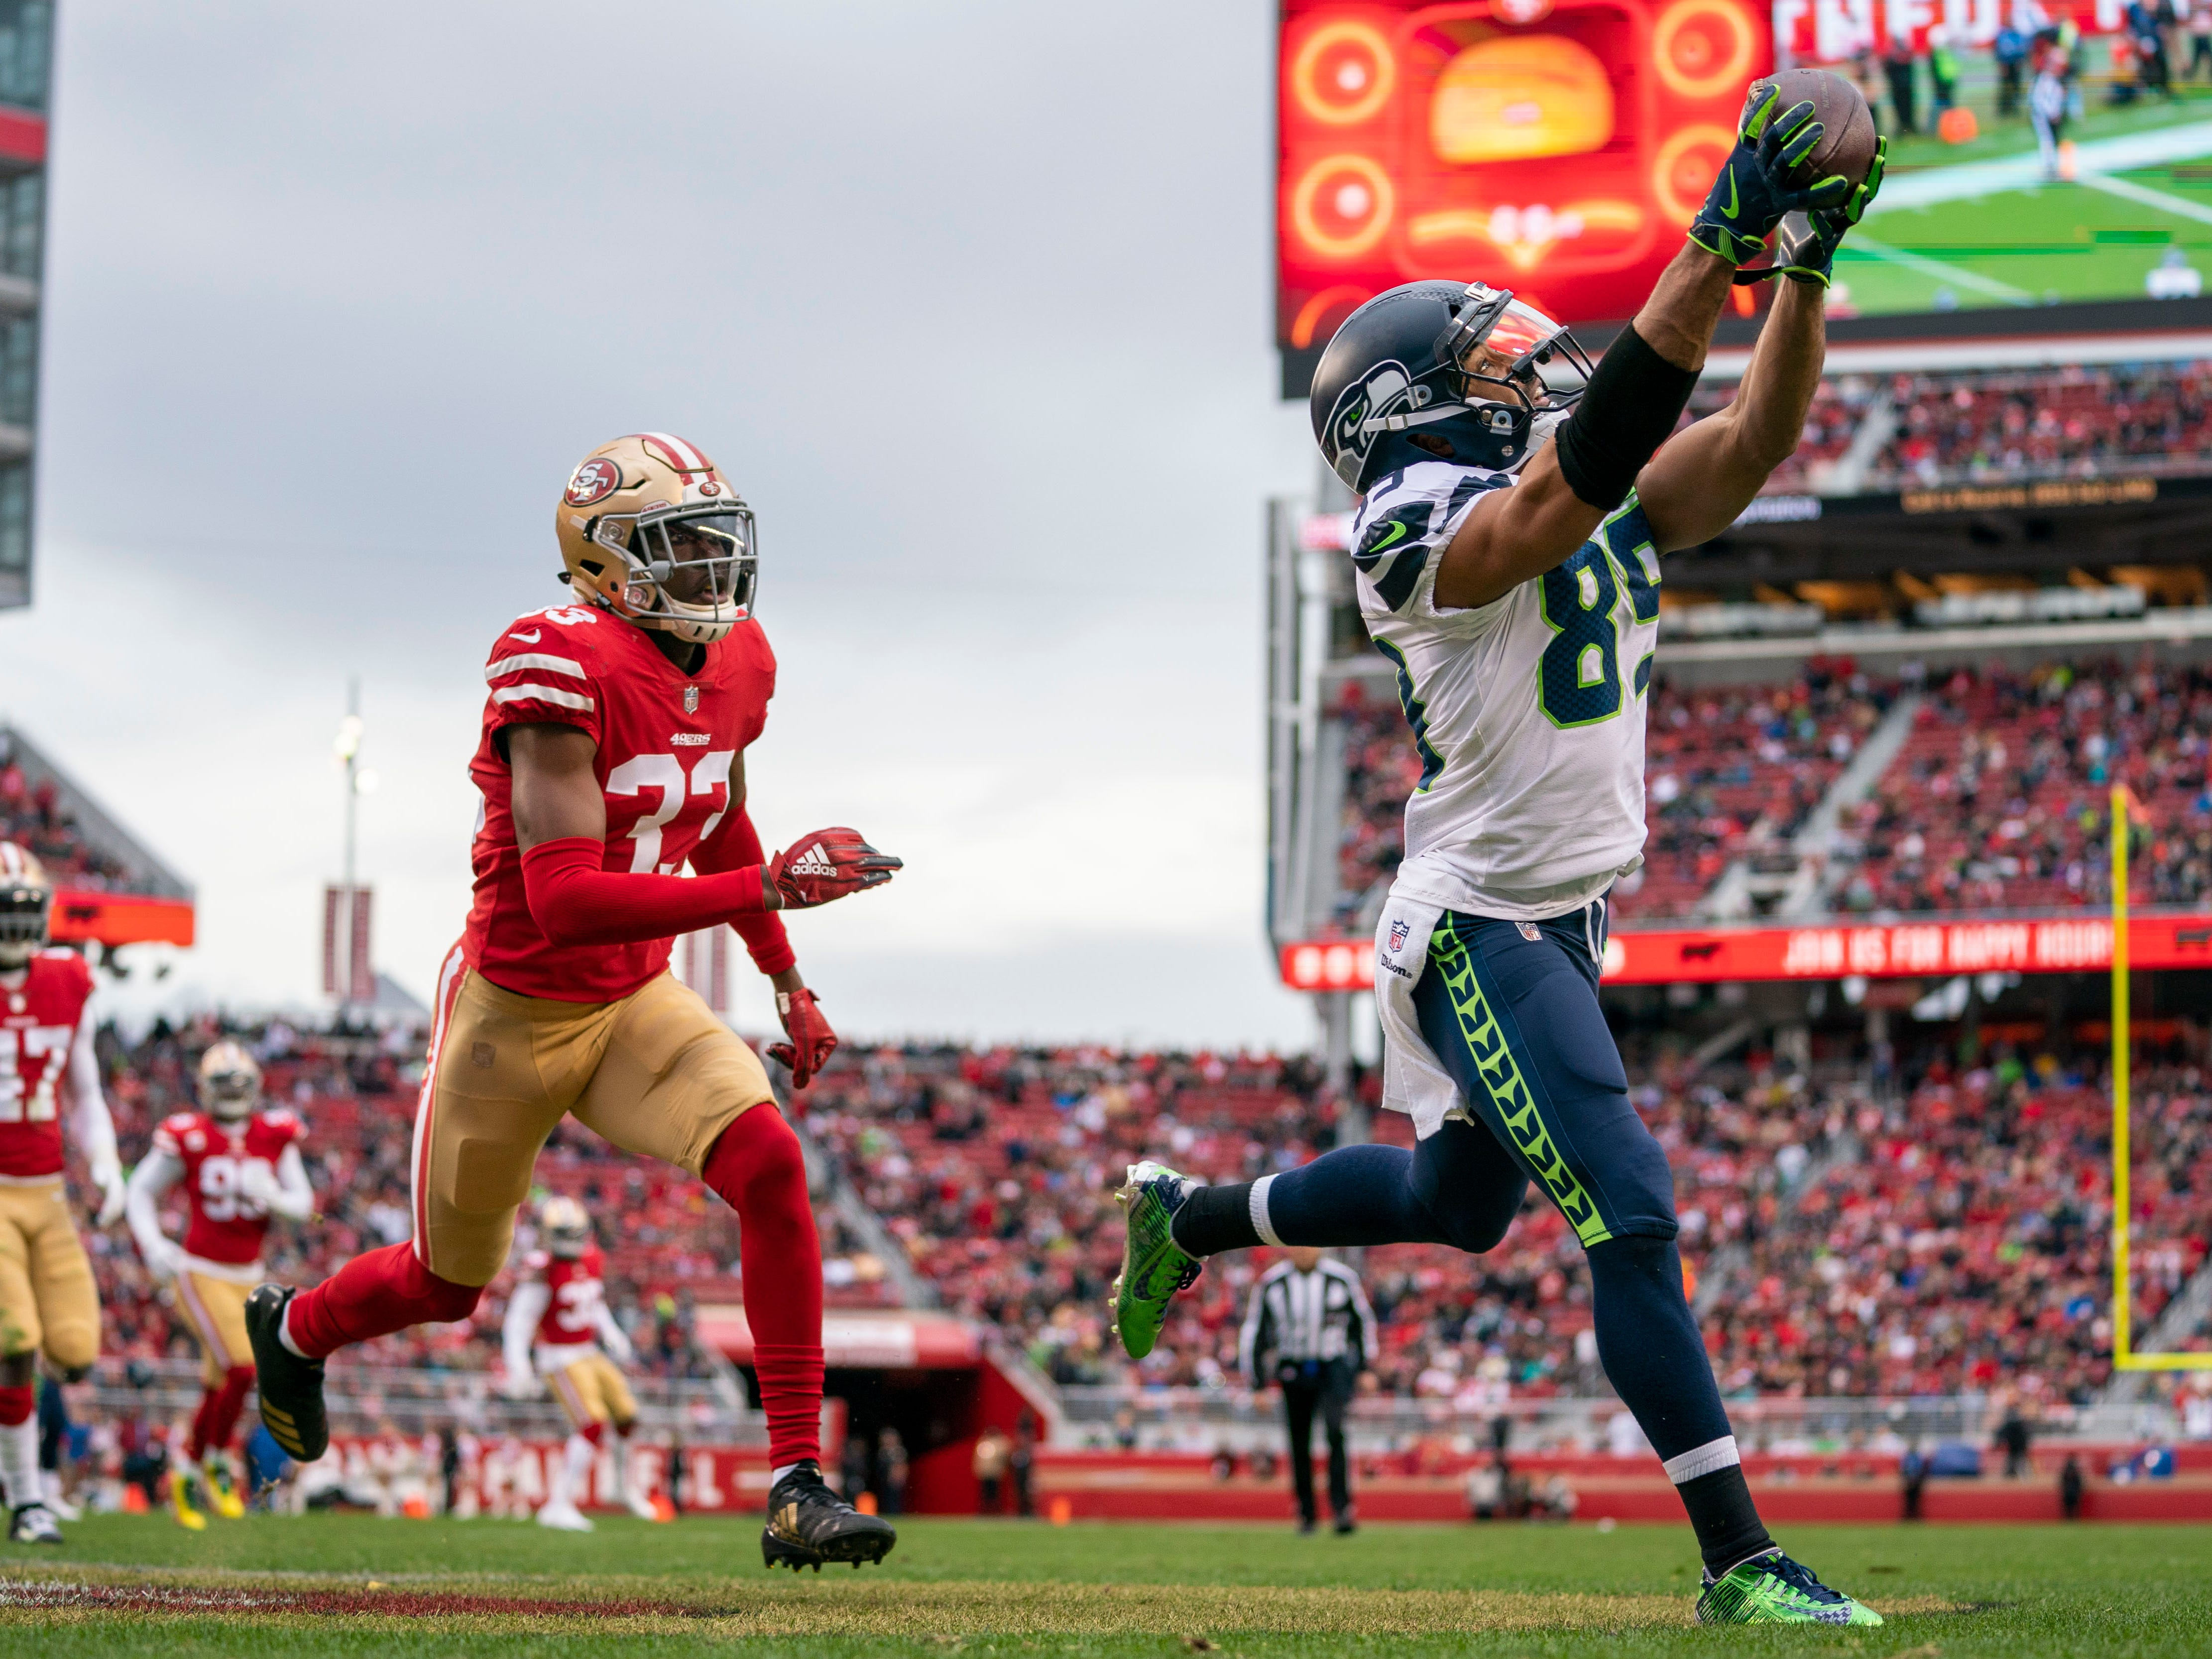 Seattle Seahawks wide receiver Doug Baldwin catches a touchdown pass against the San Francisco 49ers at Levi's Stadium.